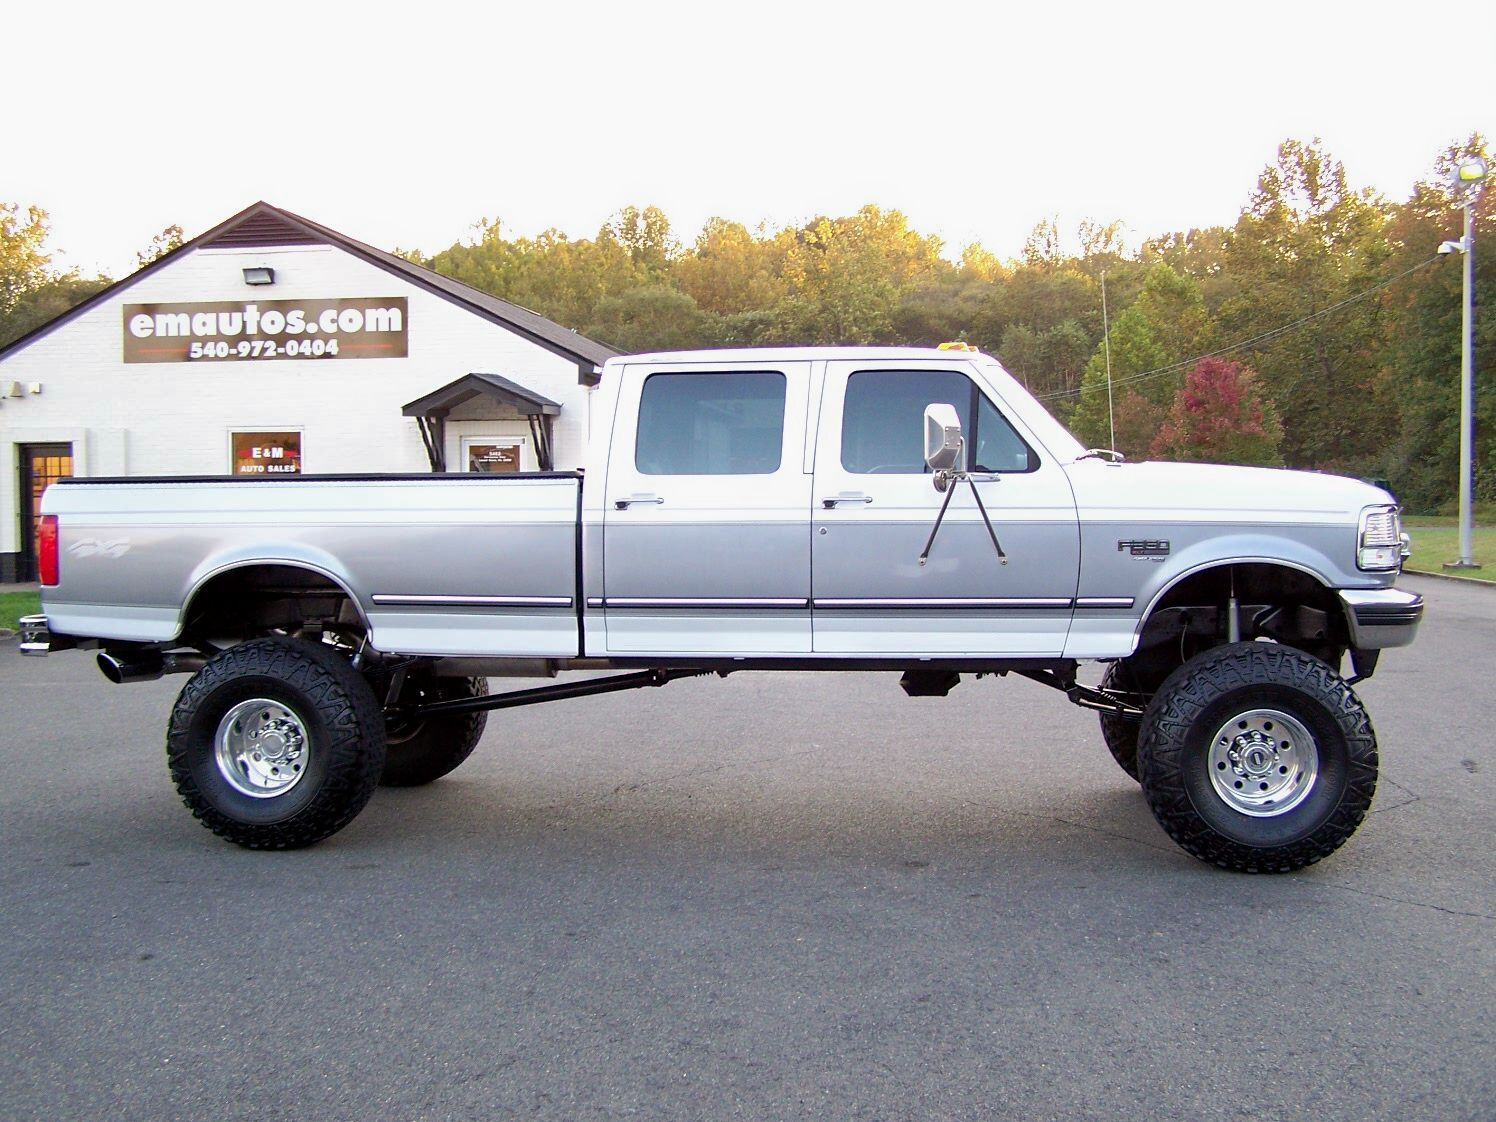 Www Emautos Com 1997 Ford F 350 Crew Cab Long Bed 4x4 7 3l Powerstroke Diesel W Manual Trans Lifted Ford Trucks Ford Trucks Trucks